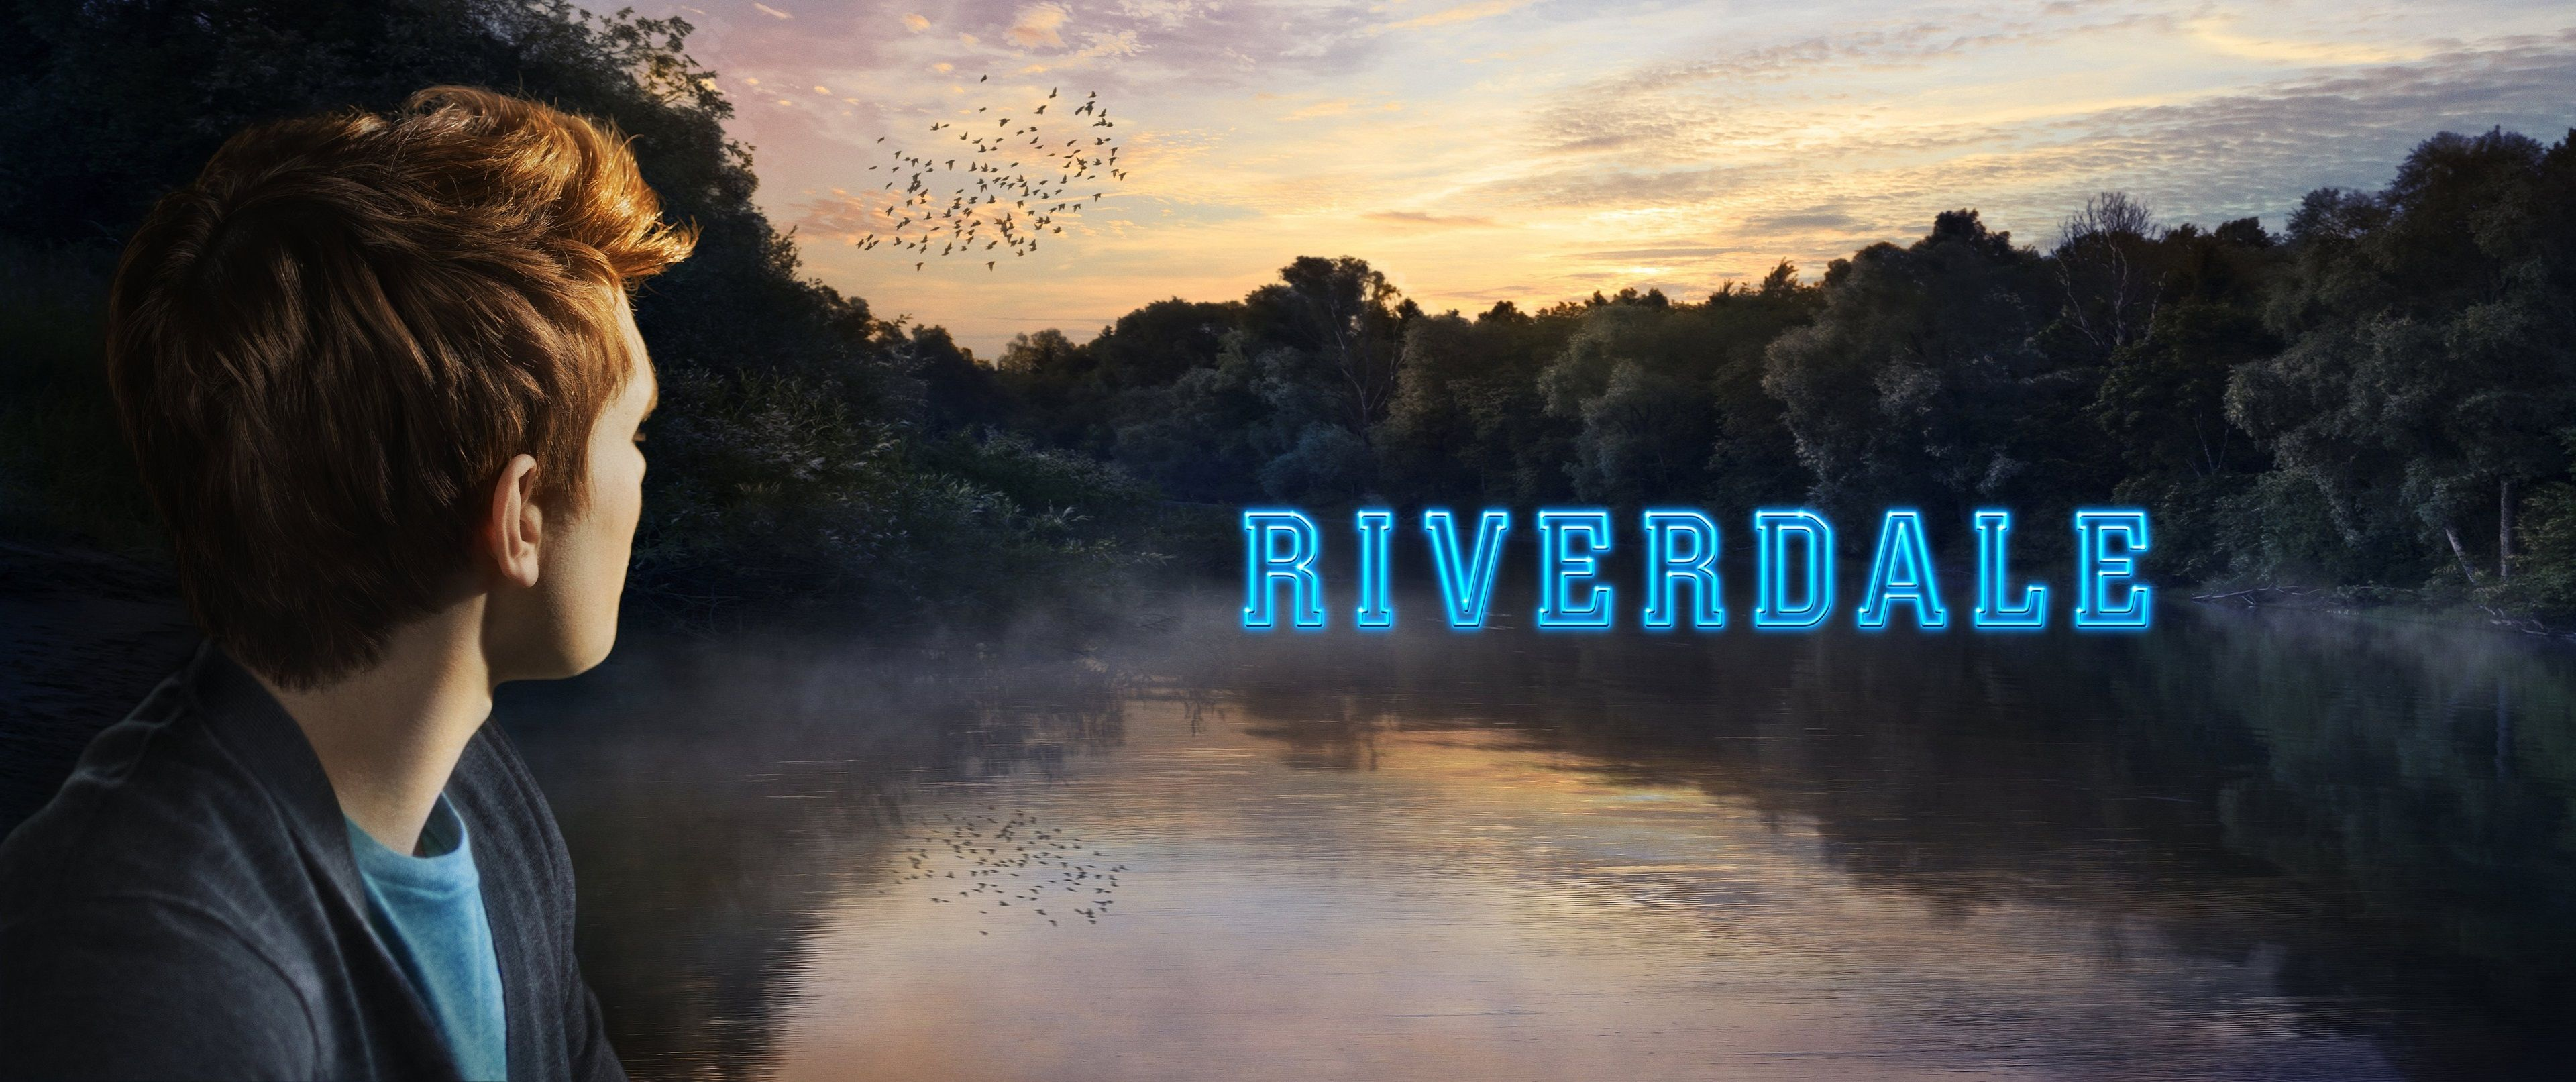 3840x1613 Riverdale 4k Cool Background Picture Riverdale Background Pictures Wallpaper